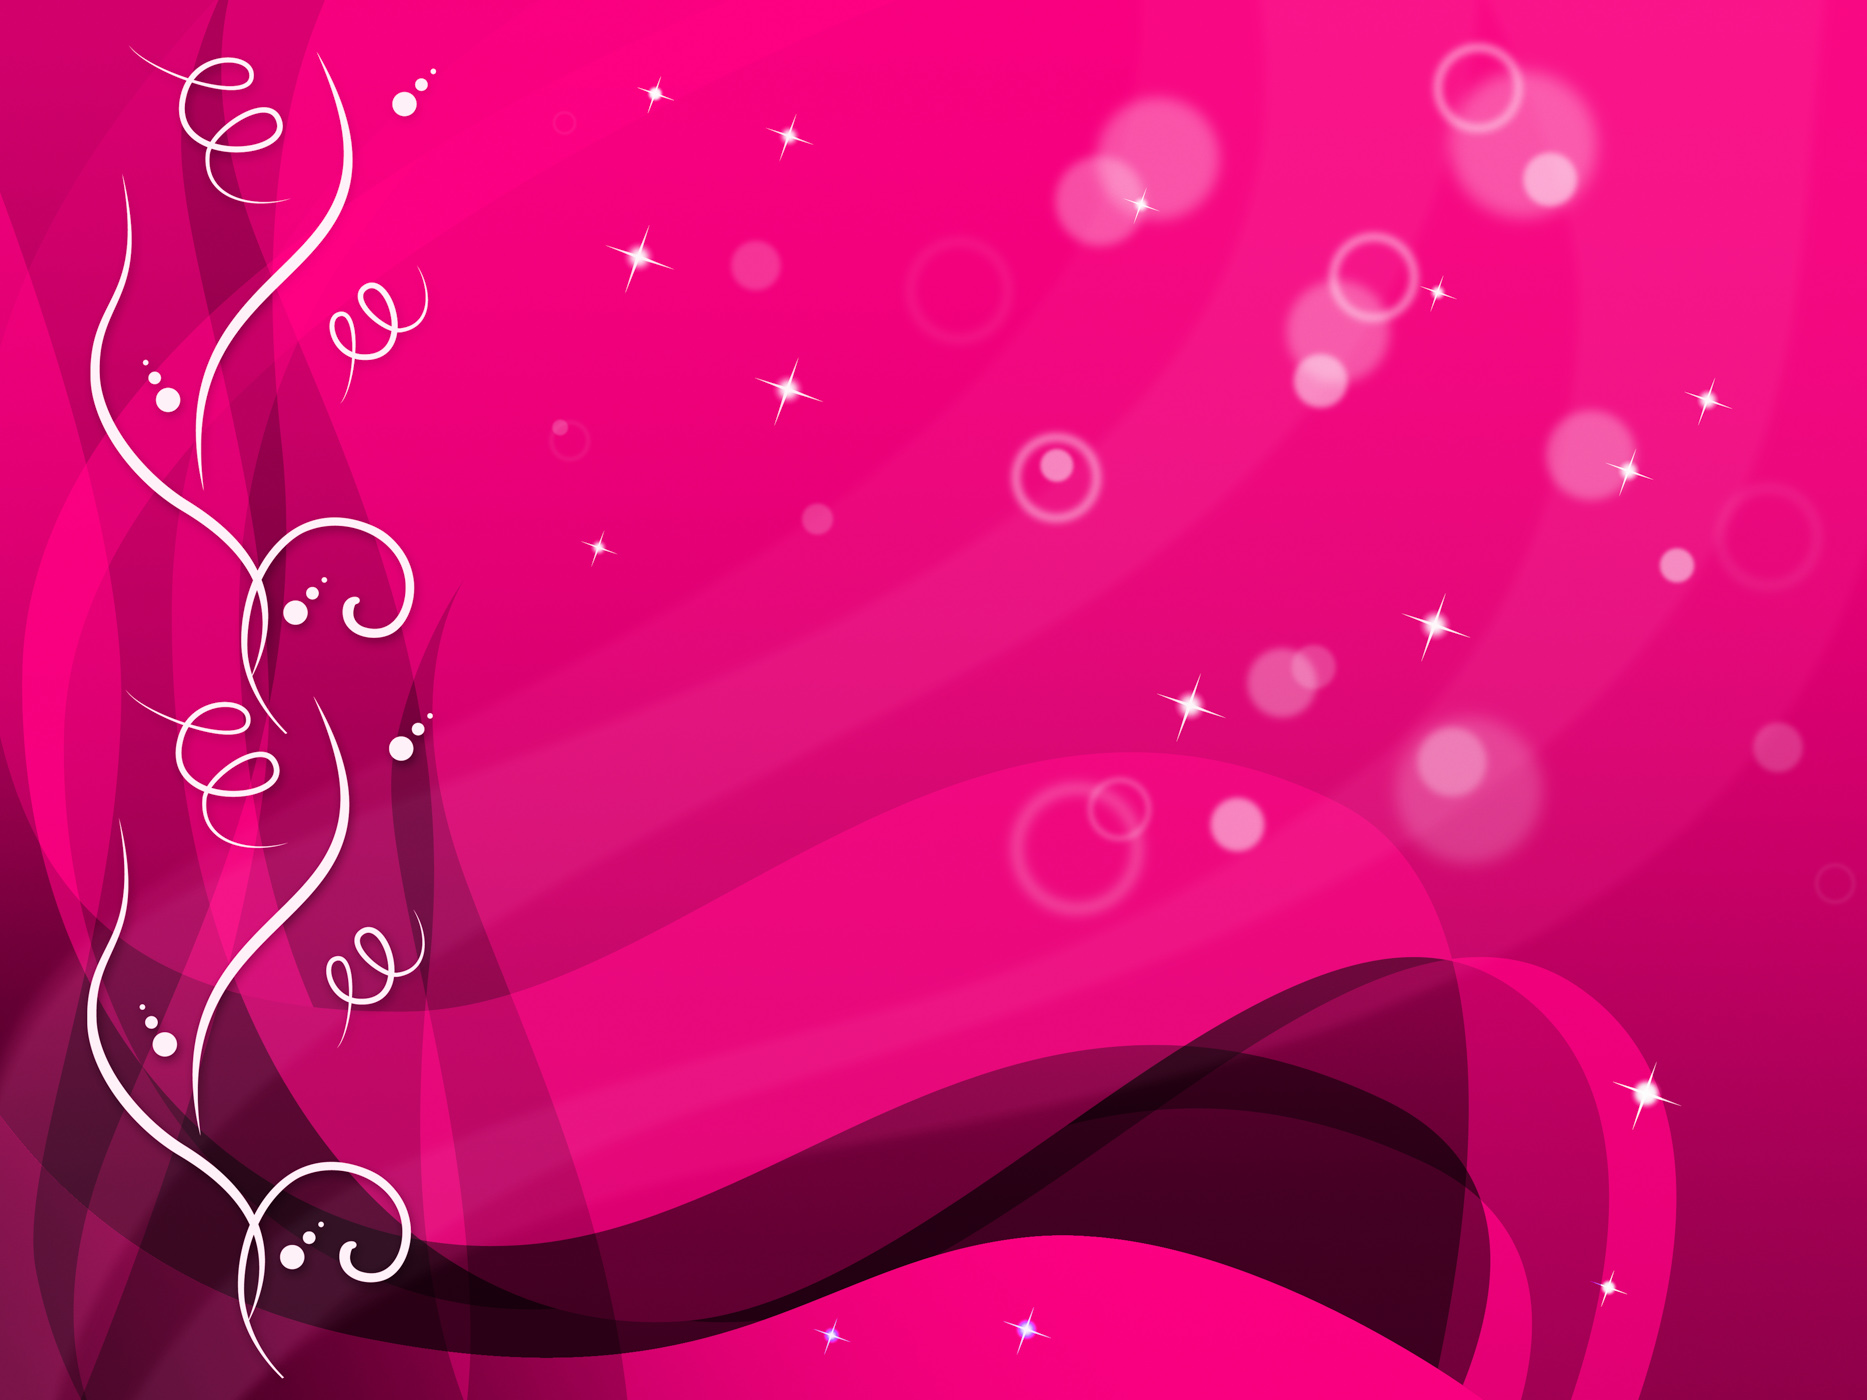 Pink floral background shows flower pattern and bubbles photo